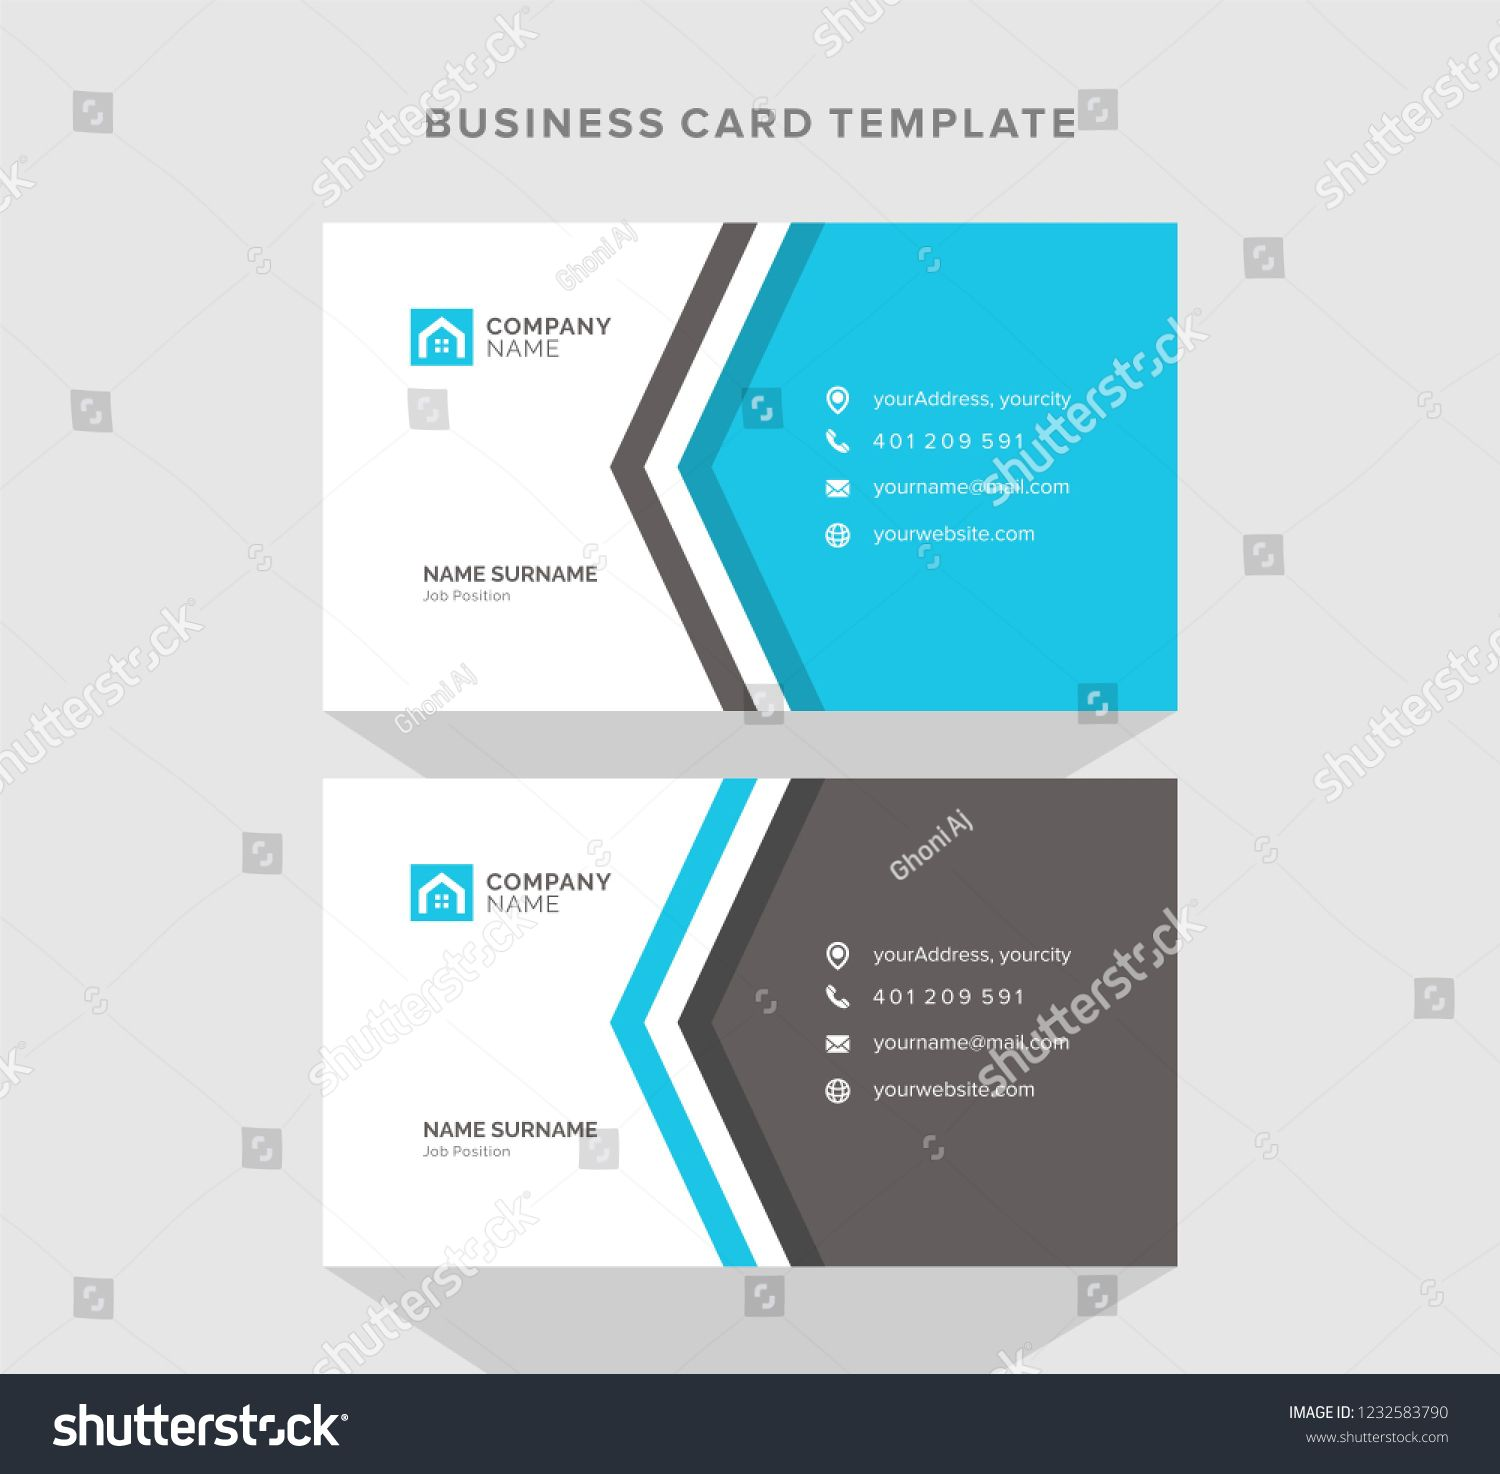 Construction And Sale Of Housing Business Card Design Vector Template Business Card Design Card Design Cards